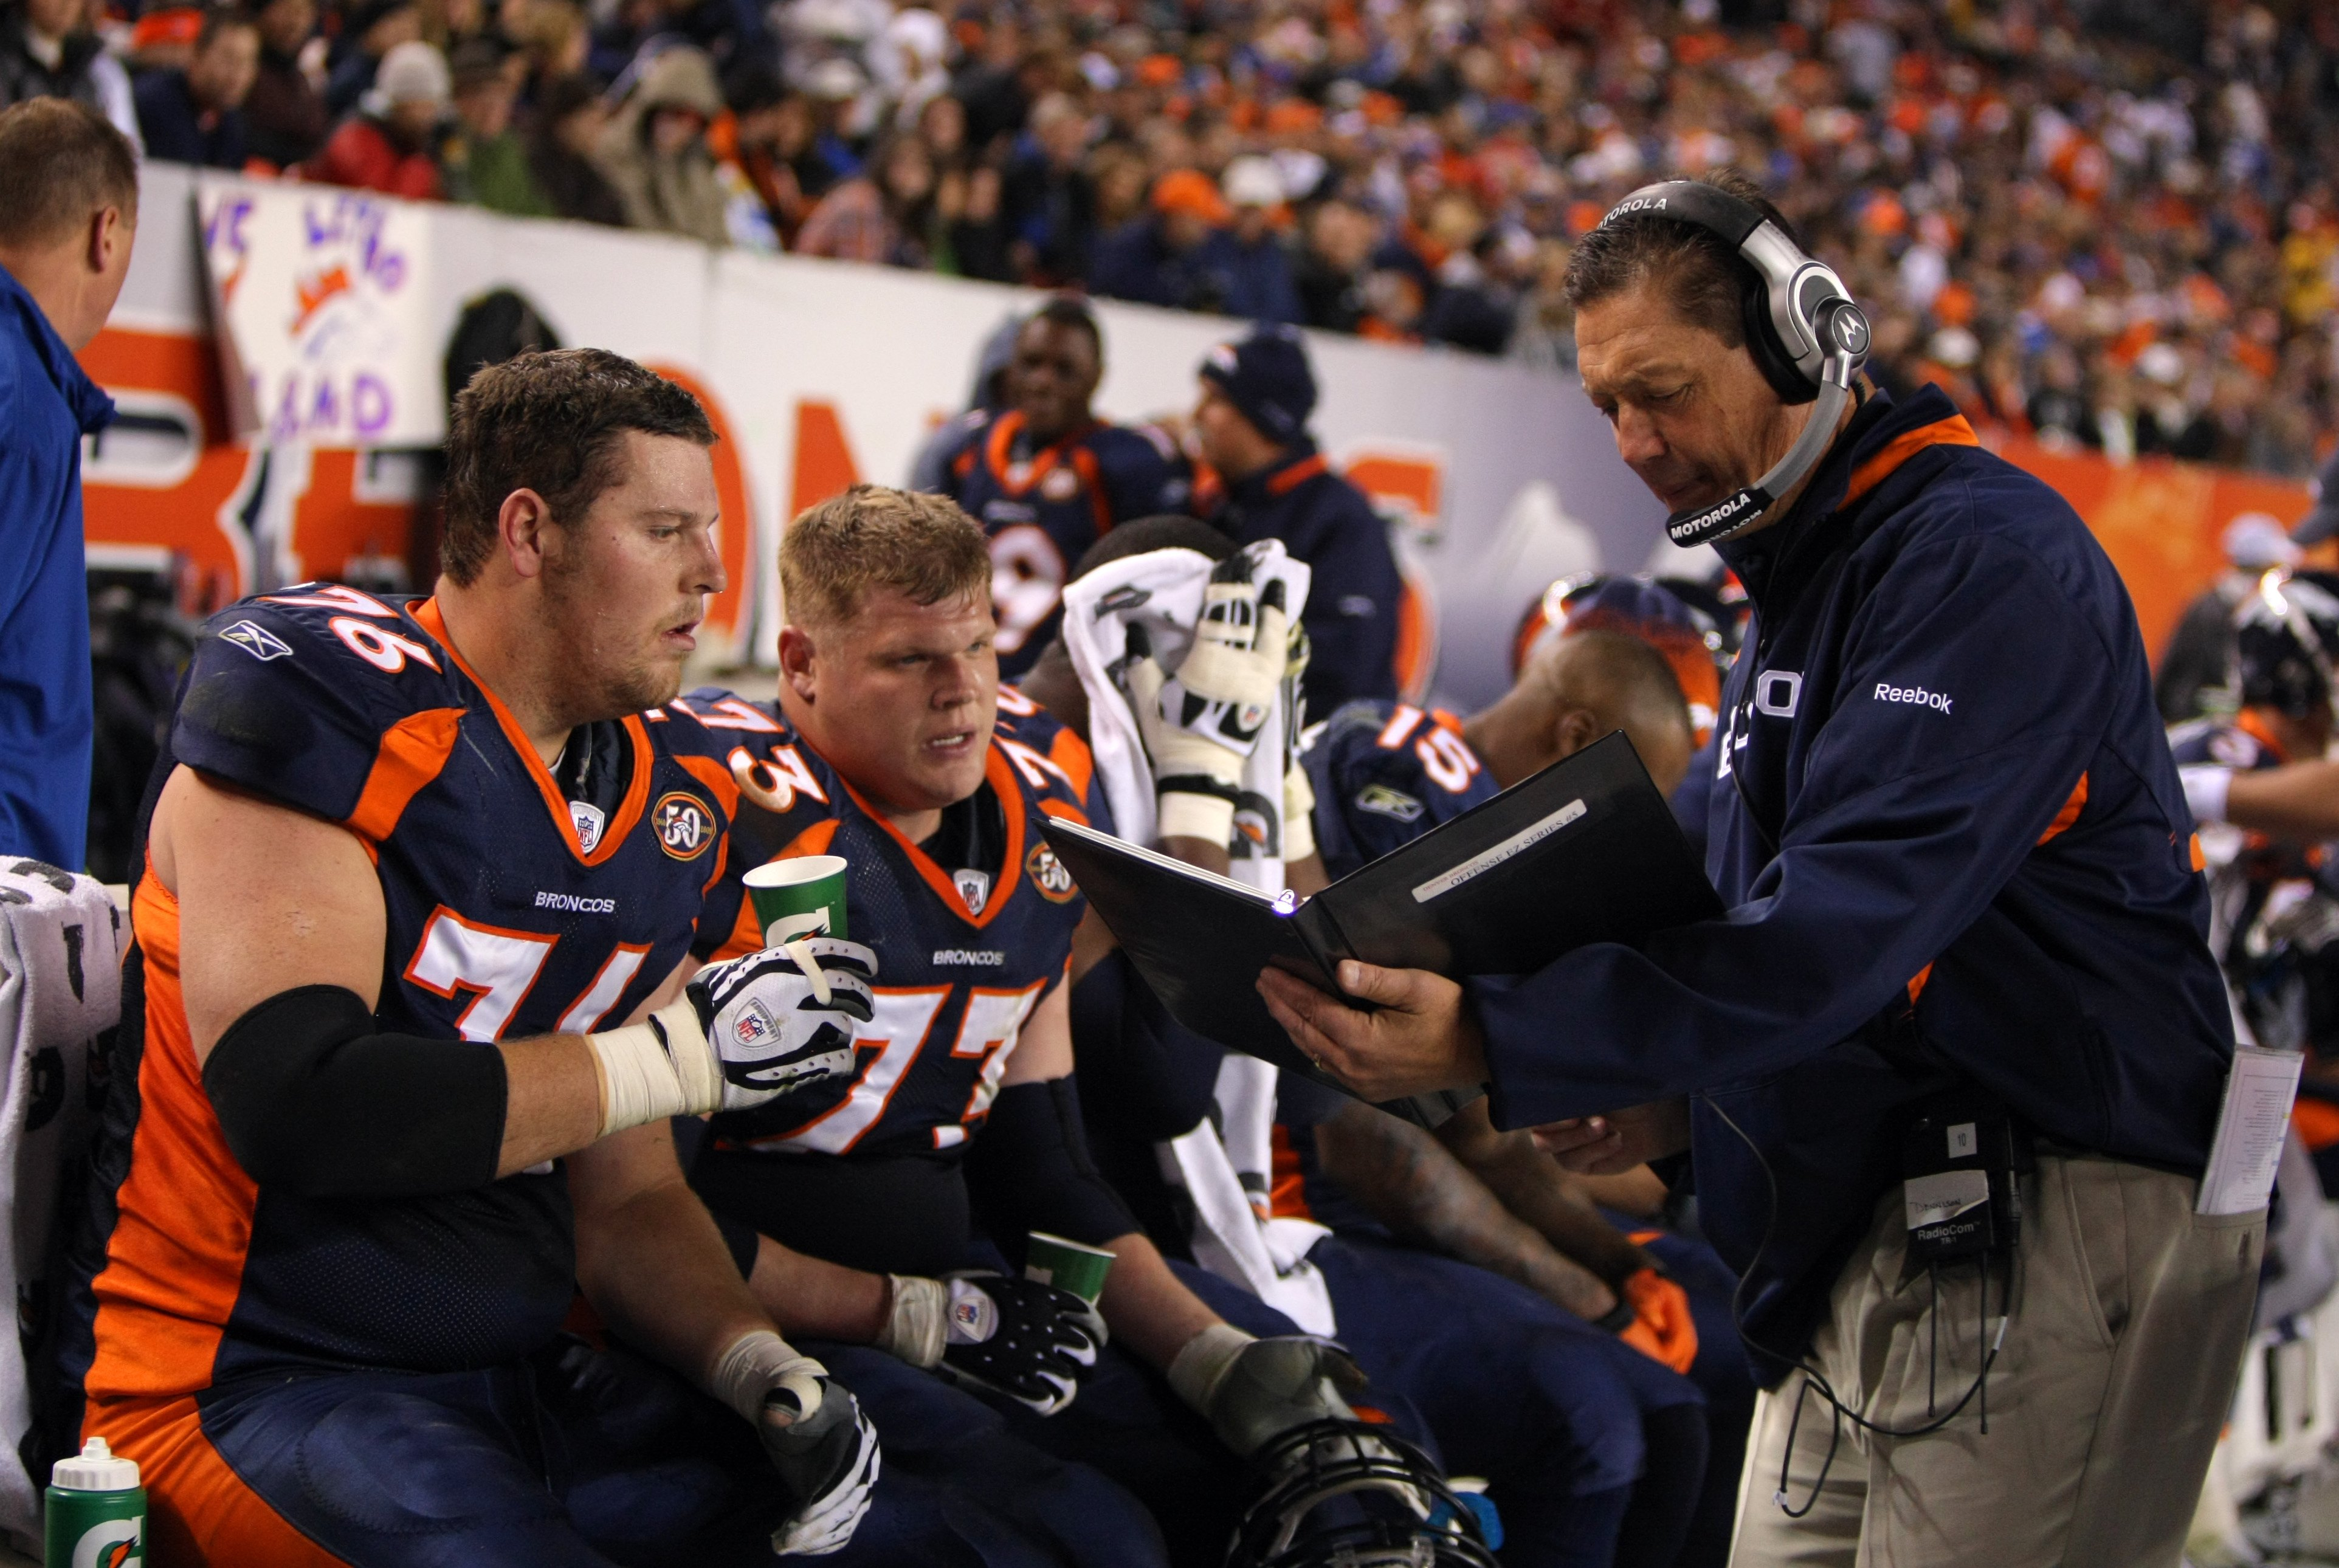 DENVER - NOVEMBER 26:  Offensive line coach Rick Dennison and Chris Kuper #73 and Tyler Polumbus #76 of the Denver Broncos look over photos in the bench area during their NFL game against the New York Giants at Invesco Field at Mile High on November 26, 2